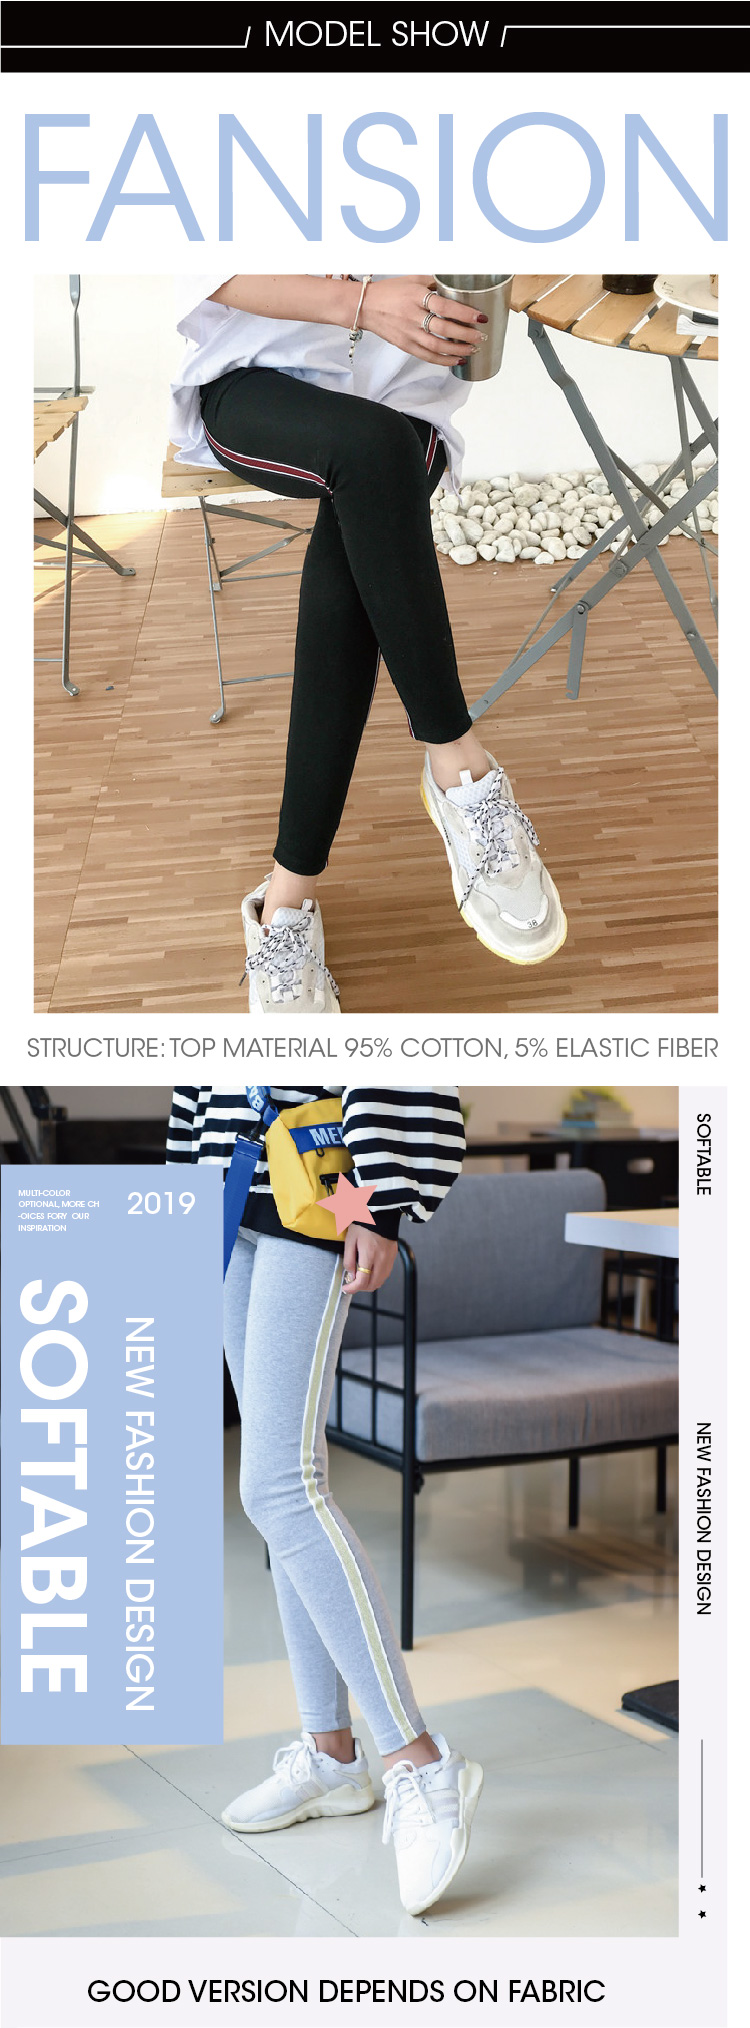 2019 New Fashion Women's Spring And Autumn High Elasticity And Good Quality Slim Fitness Capris Streetwear Leggings Cotton Pants 74